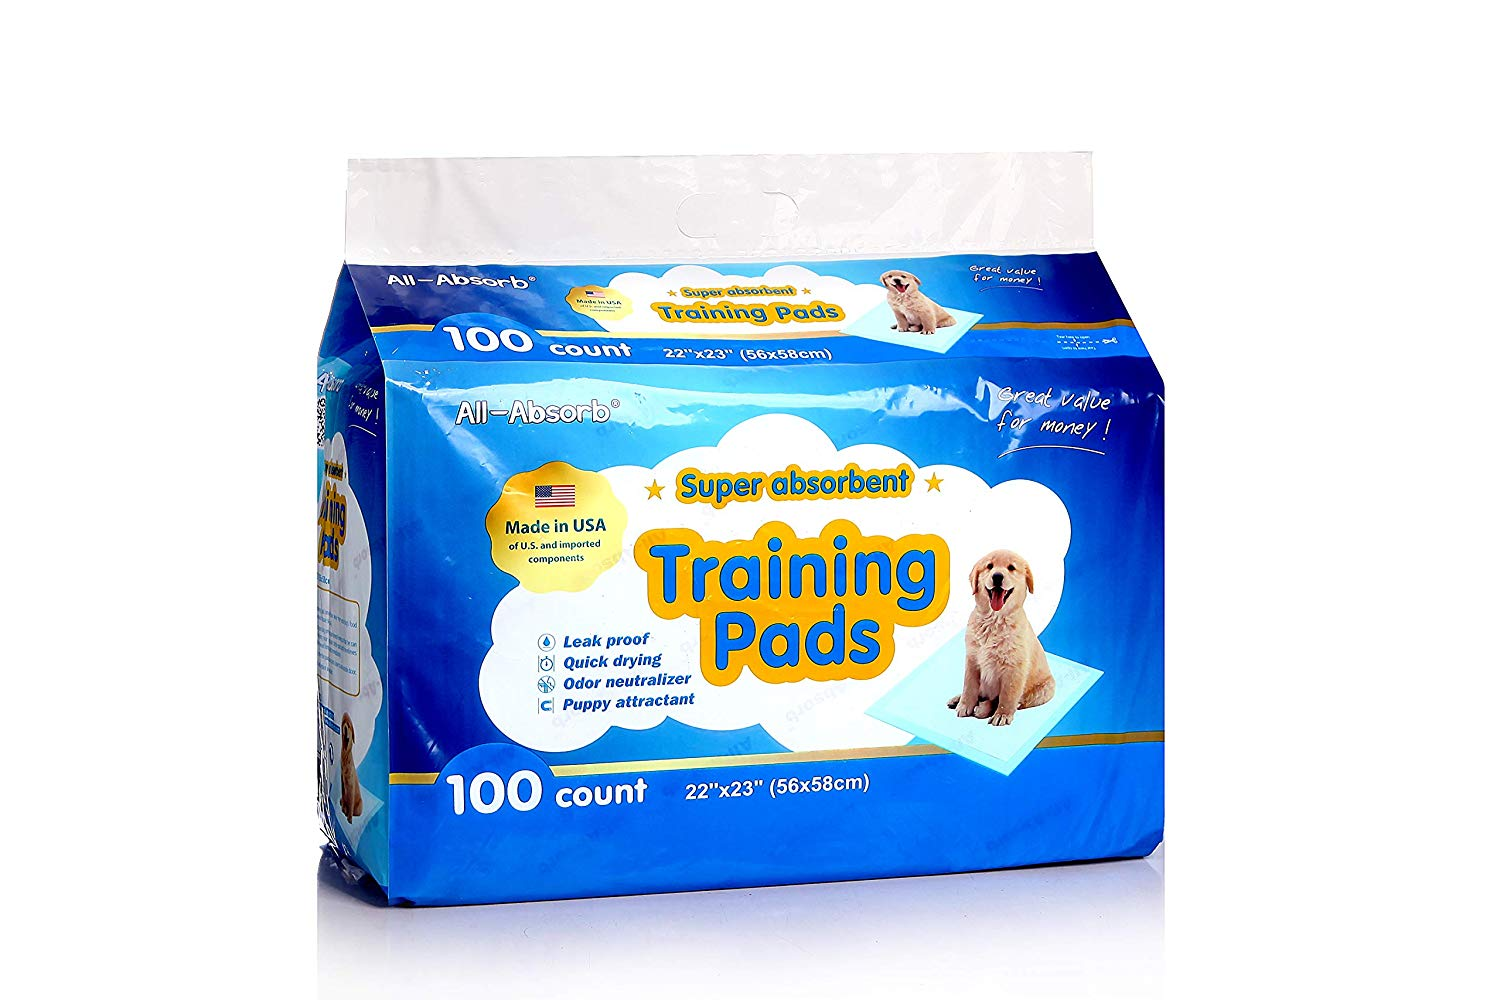 12 Gorgeous Gifts for New Puppy Parents, puppy training pads, puppy potty training